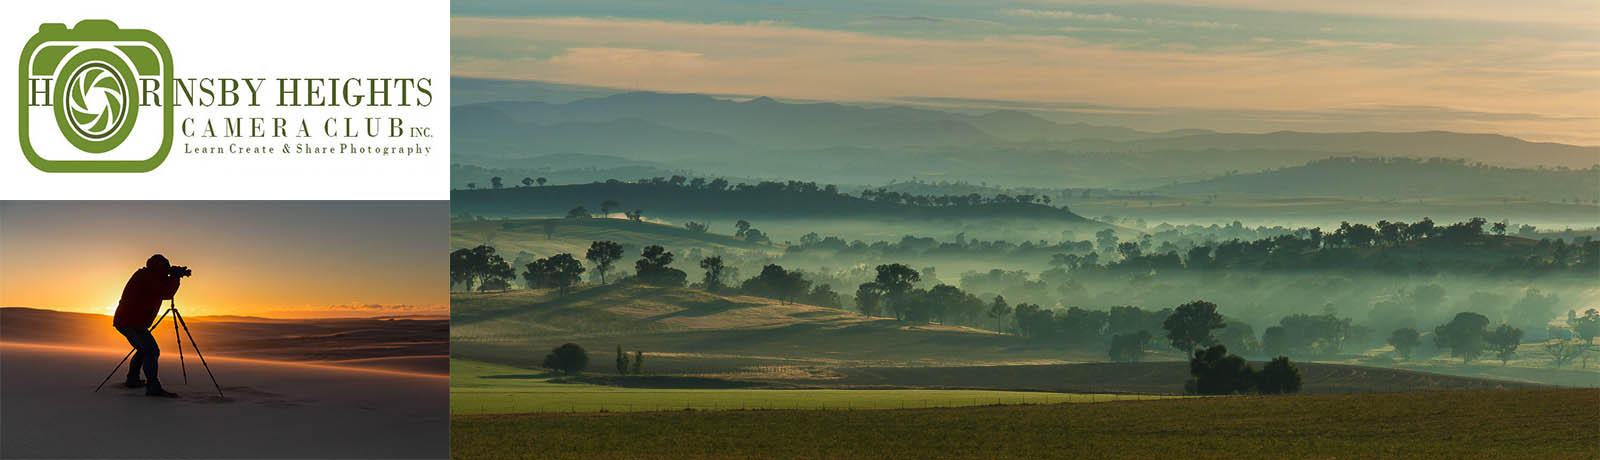 Hornsby Heights Camera Club